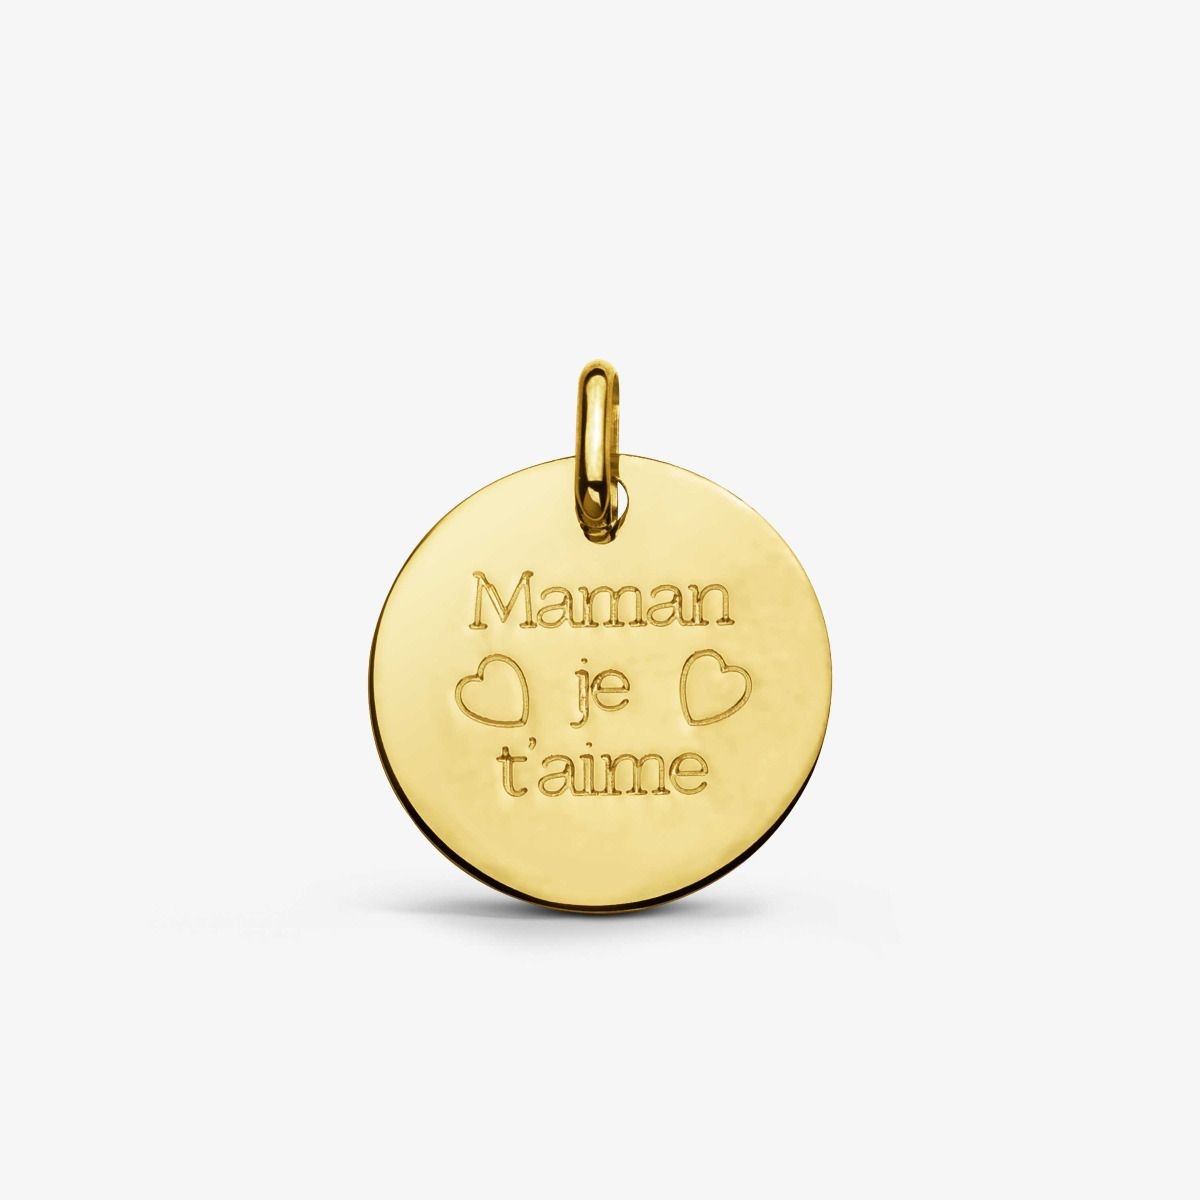 Médaille Maman je t'aime - Or Jaune 18 carats - 16mm